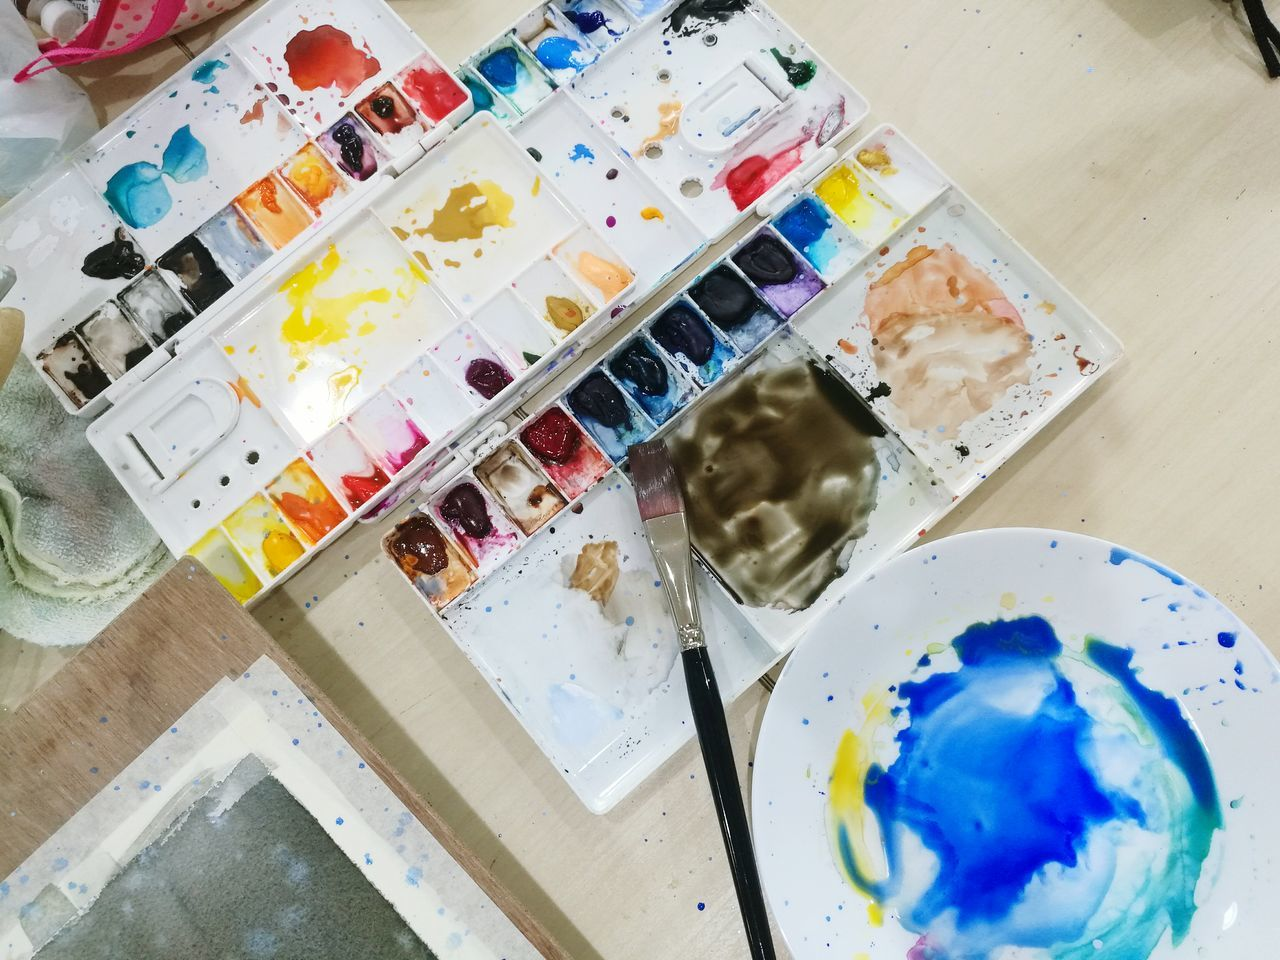 Art And Craft Paintbrush Multi Colored Palette Paint No People Indoors  Variation Oil Paint Art Studio Day Close-up Paint Artist At Work Artist Watercolours Watercolors  Artist Painting People Adults Only Relexing Hobby